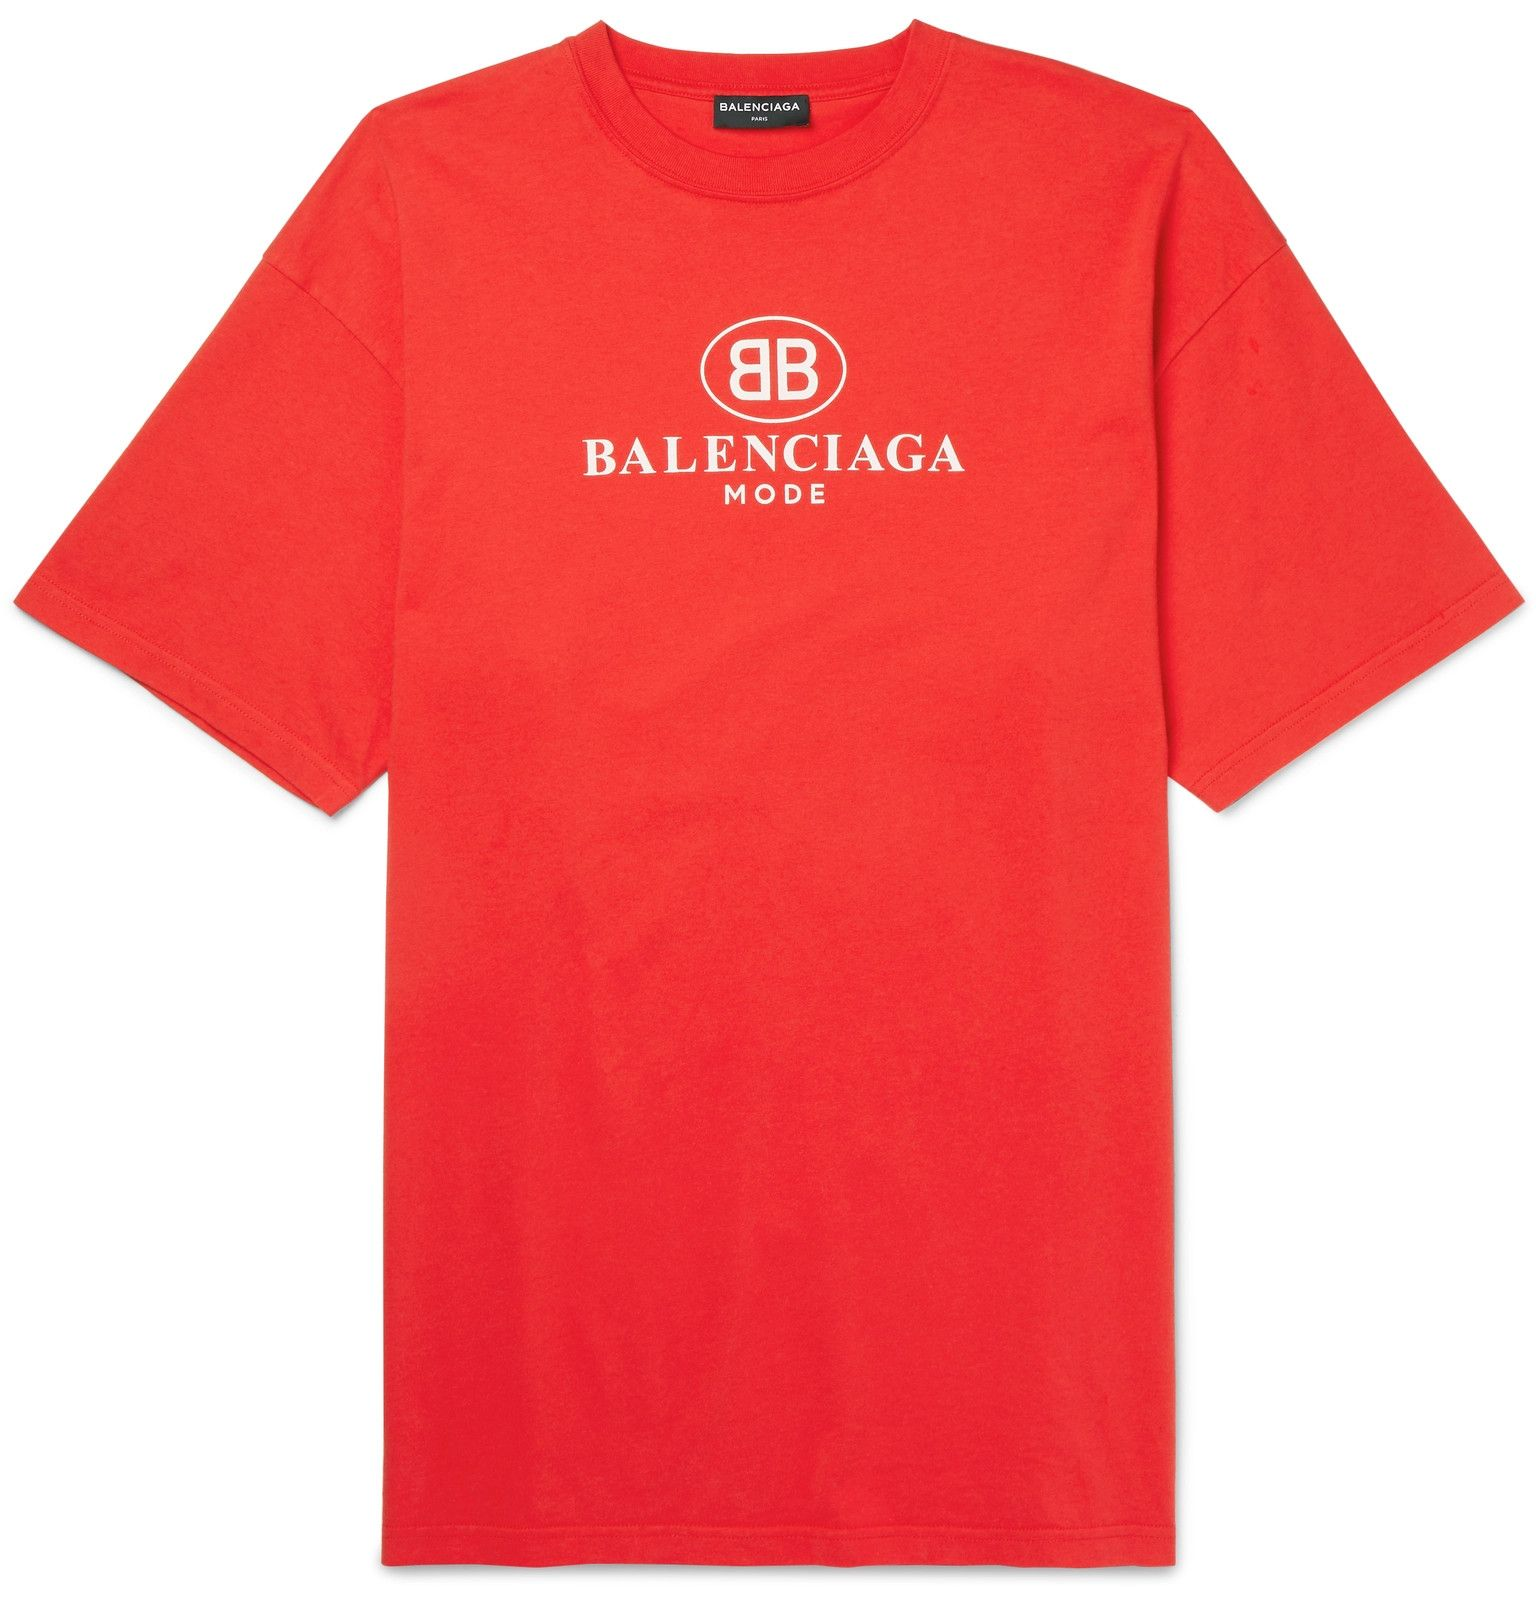 cb77121c Balenciaga's T-shirt is printed with the label's iconic mirrored double 'B'  logo – first used by the label in the '70s and now synonymous with Creative  ...